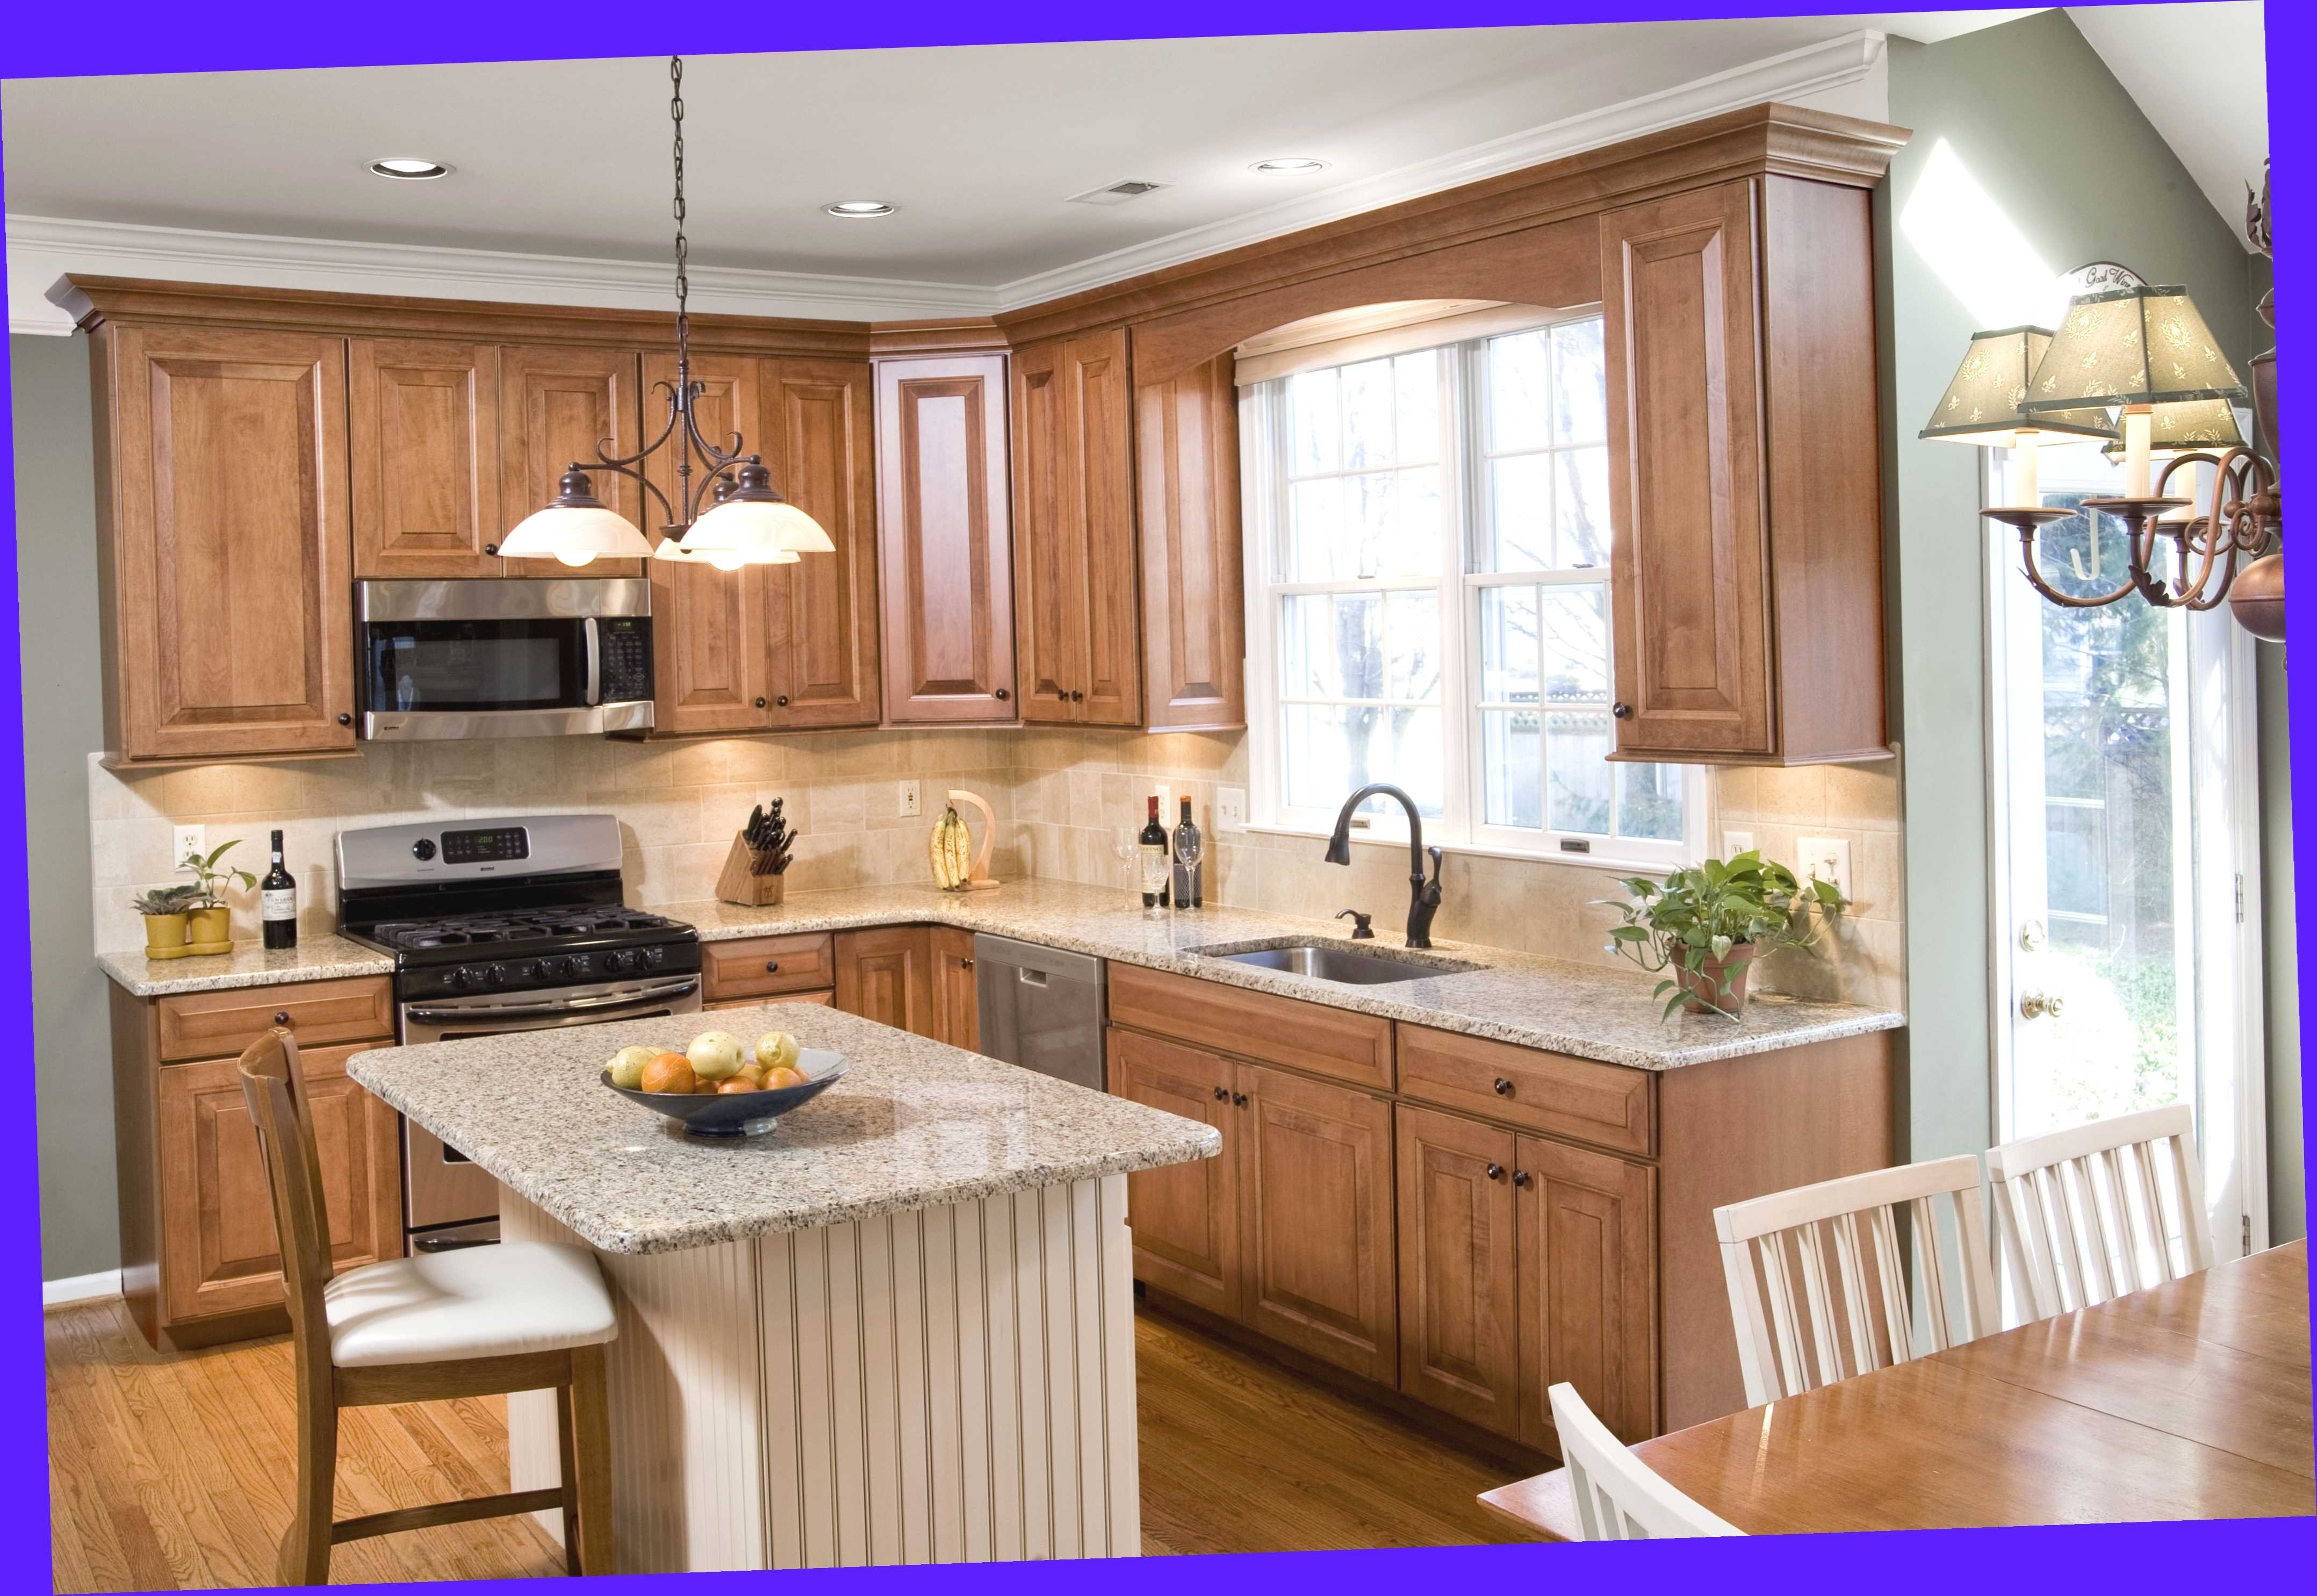 10 Unique Small U Shaped Kitchen Remodel Ideas kitchen contemporary u shaped kitchen remodel before and after u 2021